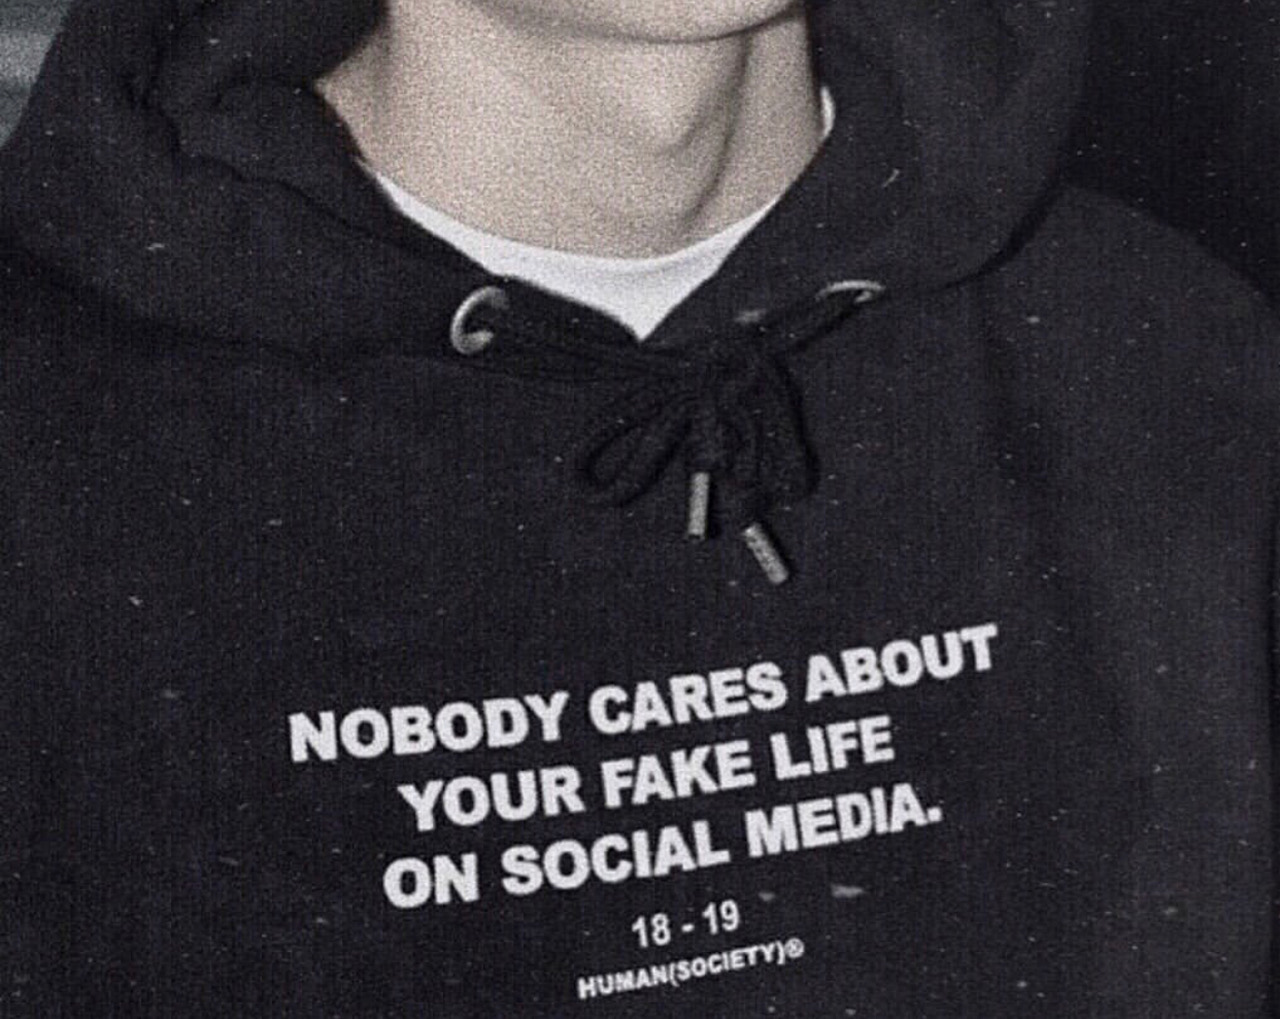 Nobody cares about your fake life on social media